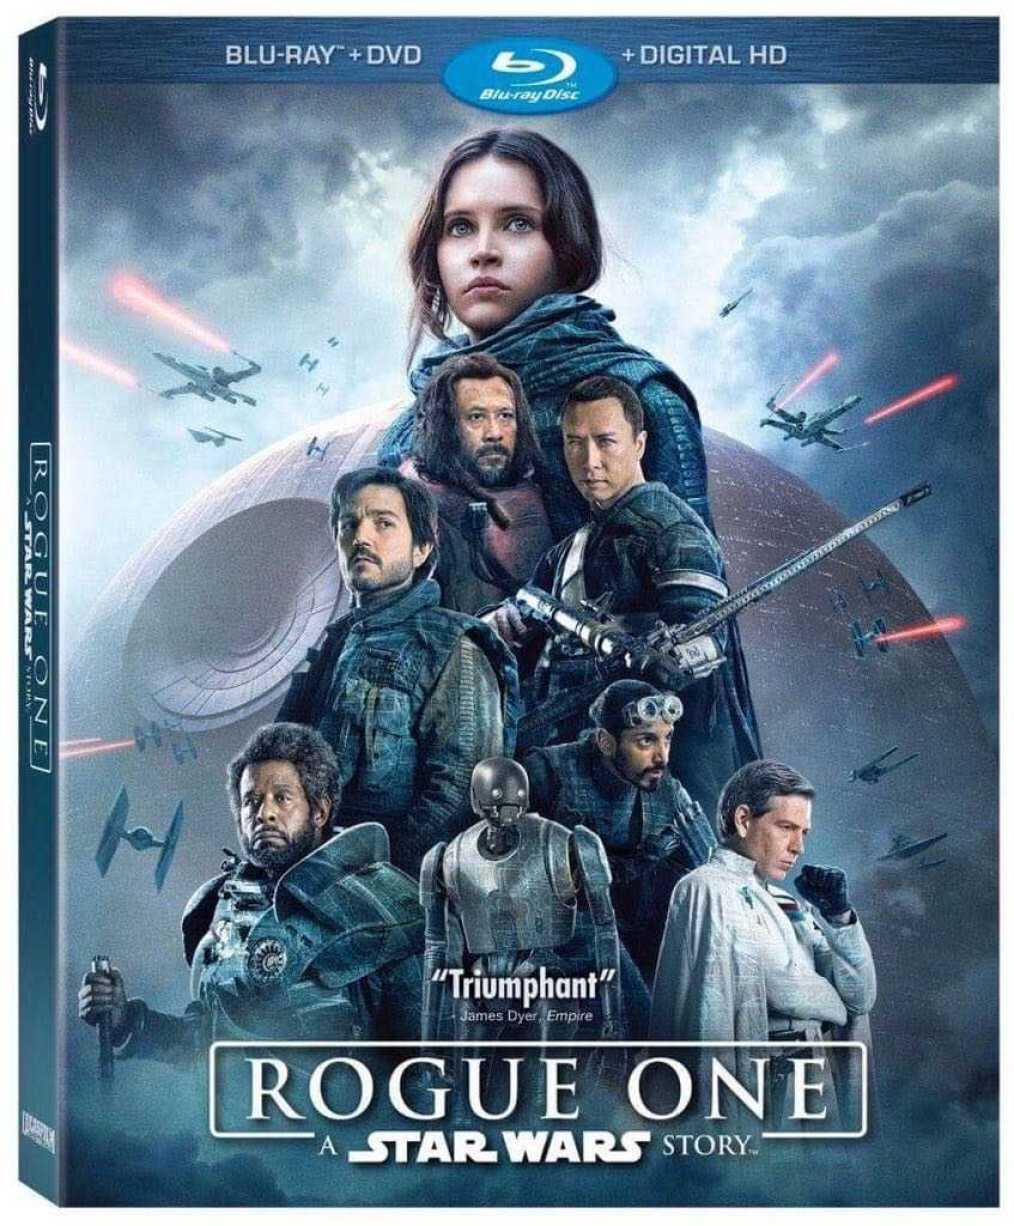 IMG 6819 - Rogue One: A Star Wars Story Blu-Ray exclusives and release date!